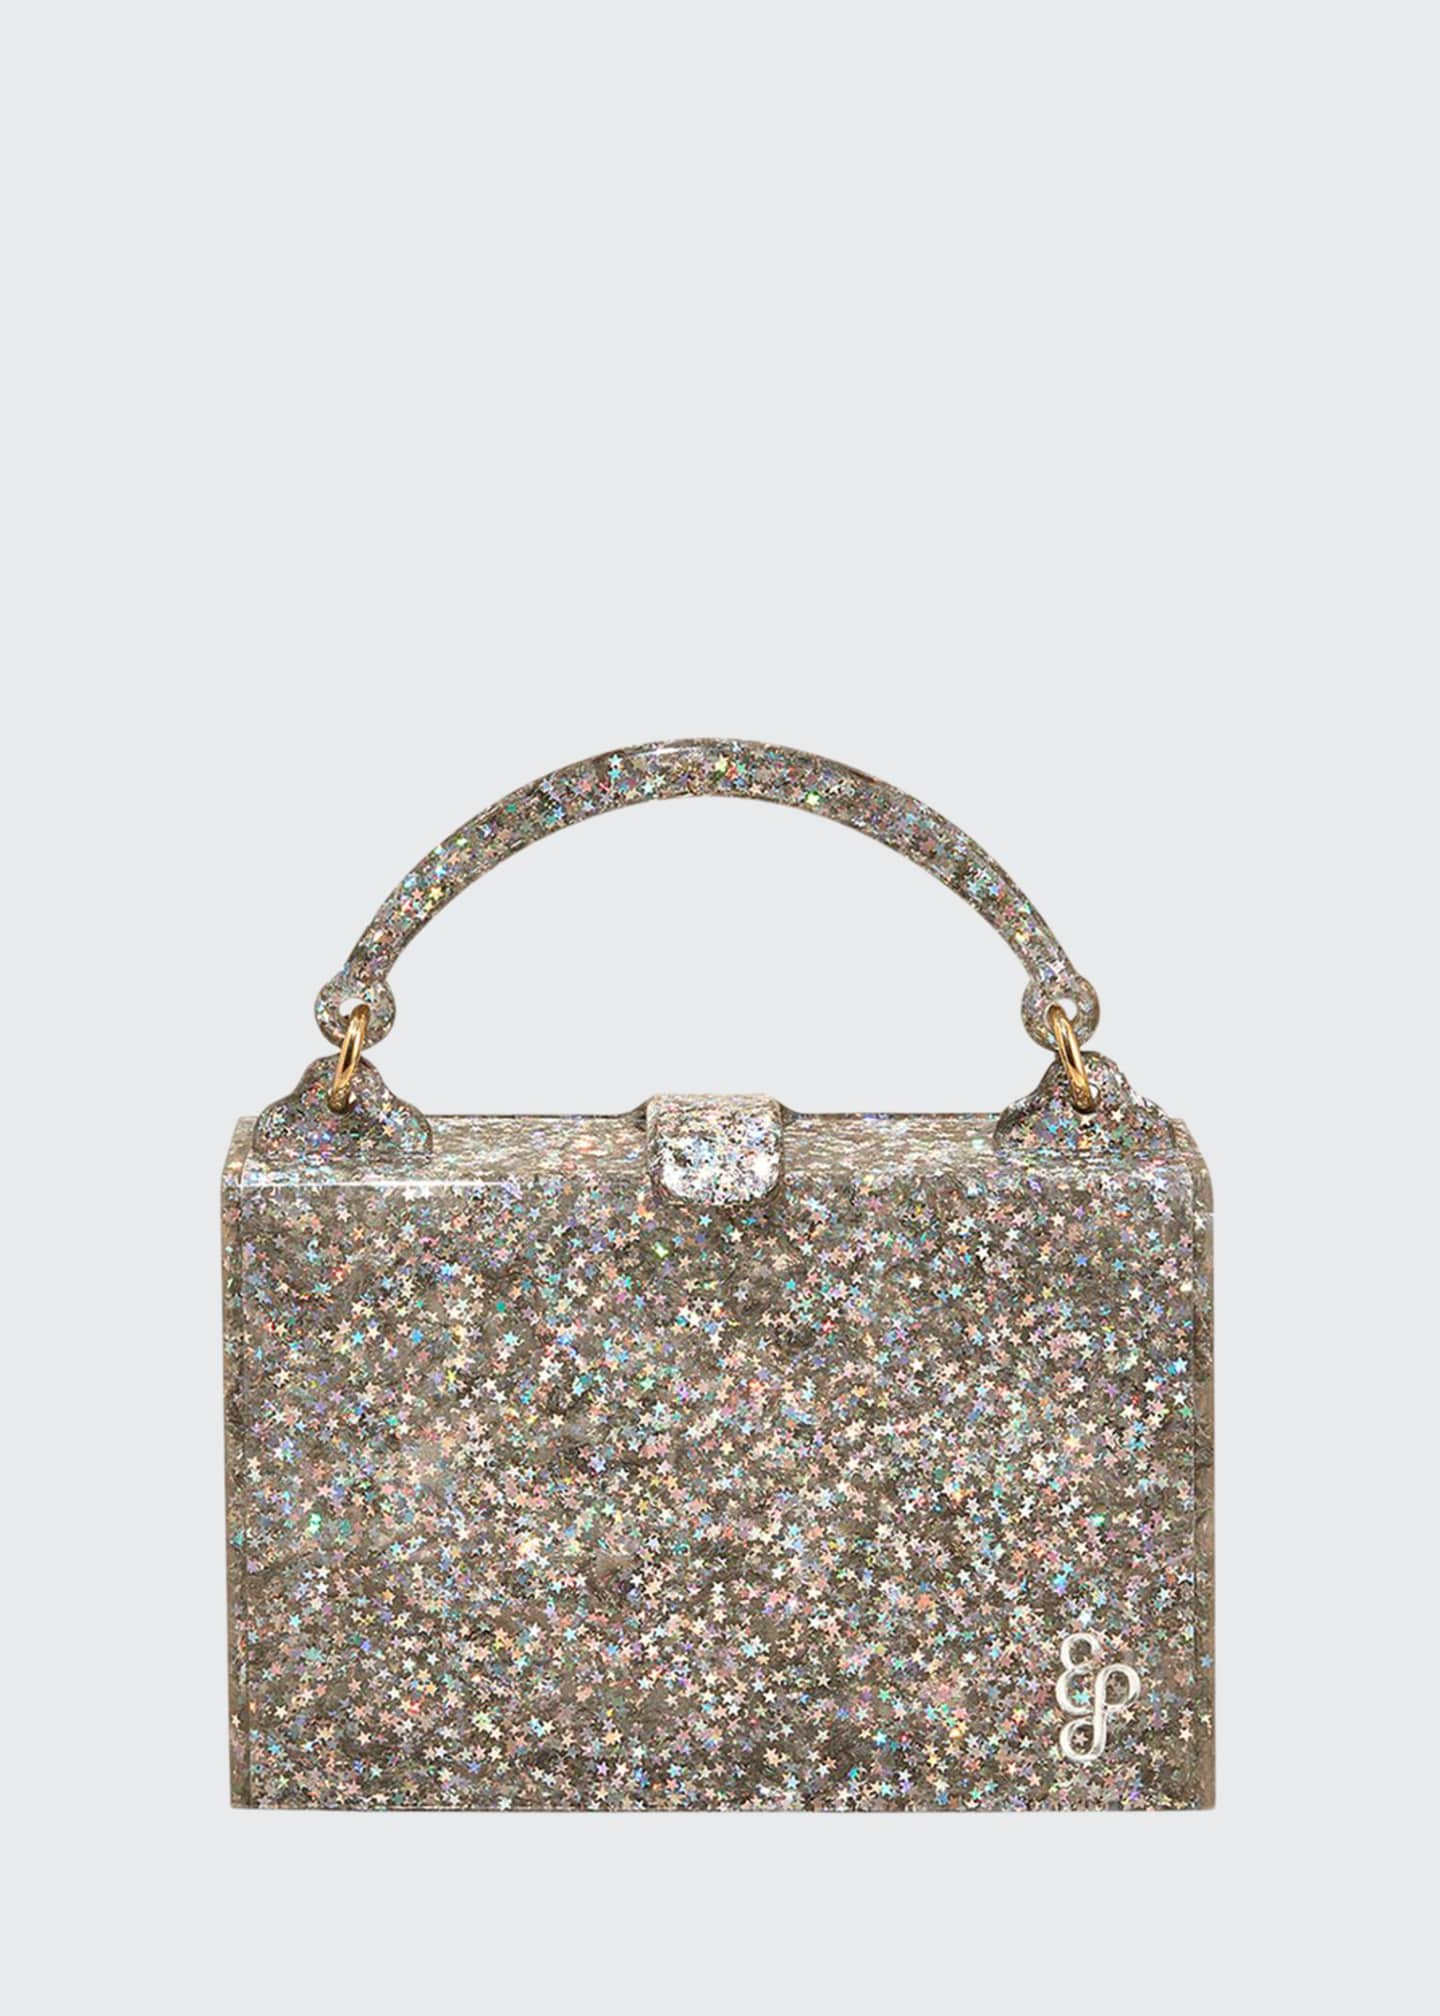 Edie Parker Housewife Glittered Top-Handle Bag